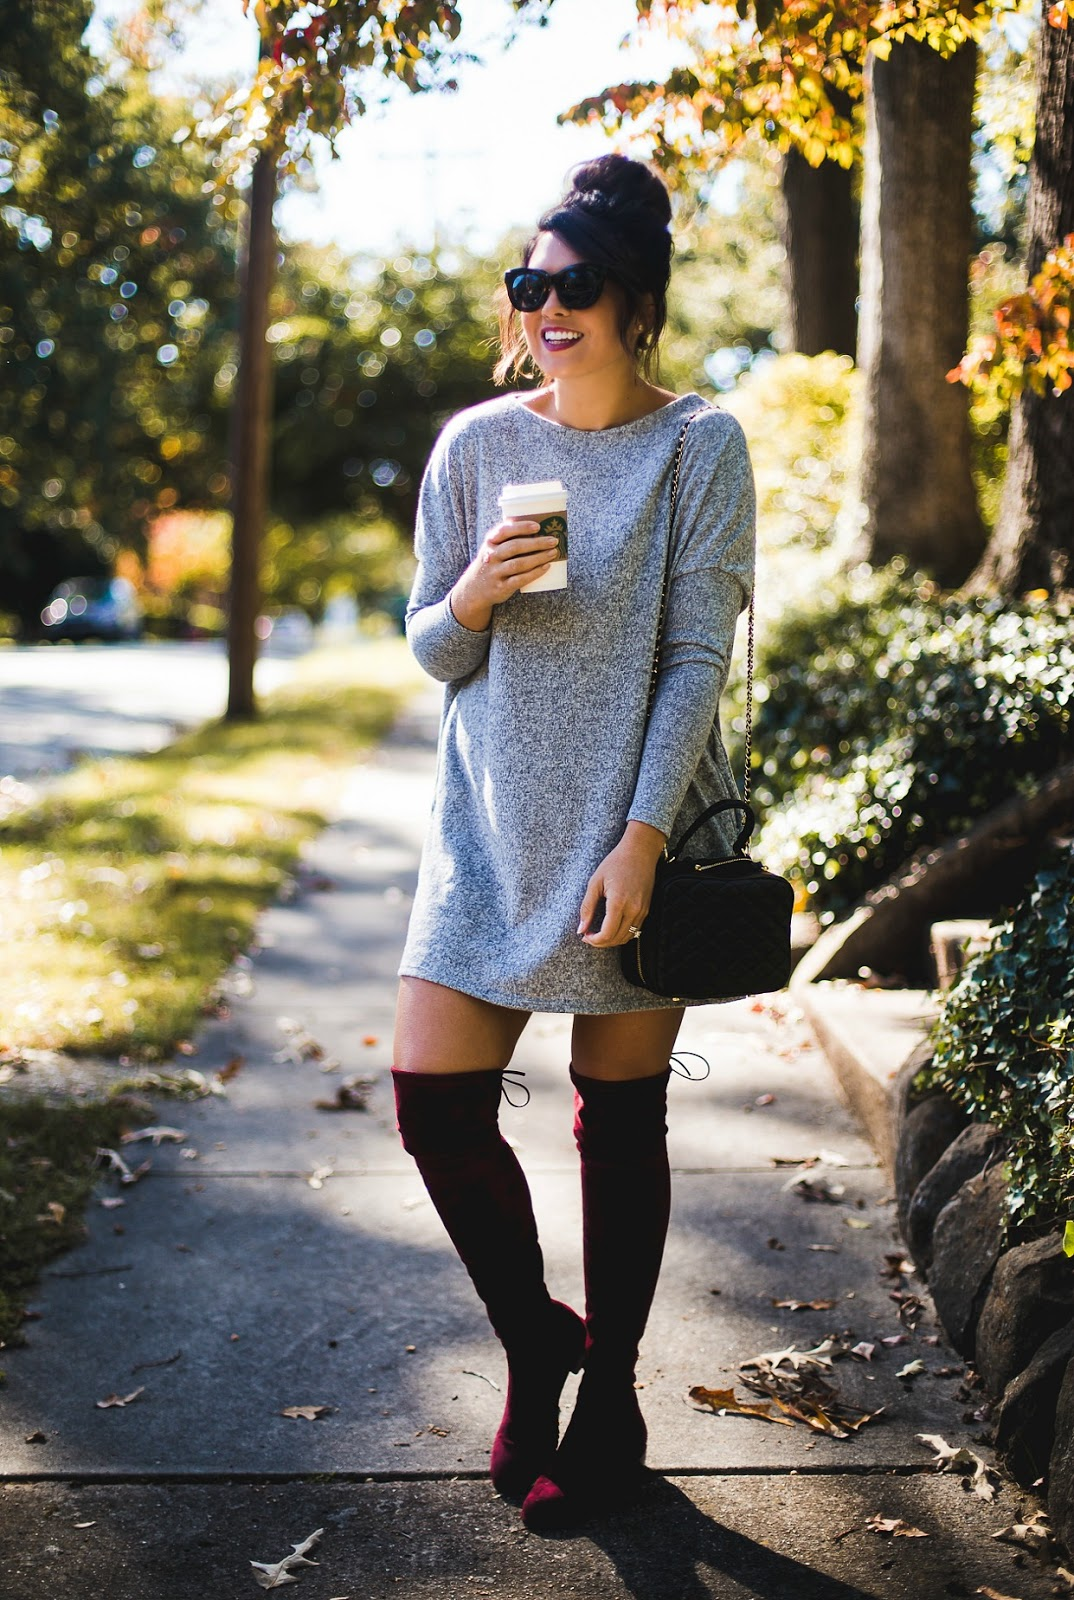 vici collection, sweater dress, life and messy hair, xo samantha brooke, samantha brooke, nc fashion blogger, nc photographer, fashion post, over the knee boots, stuart weitzman over the knee boot dupes